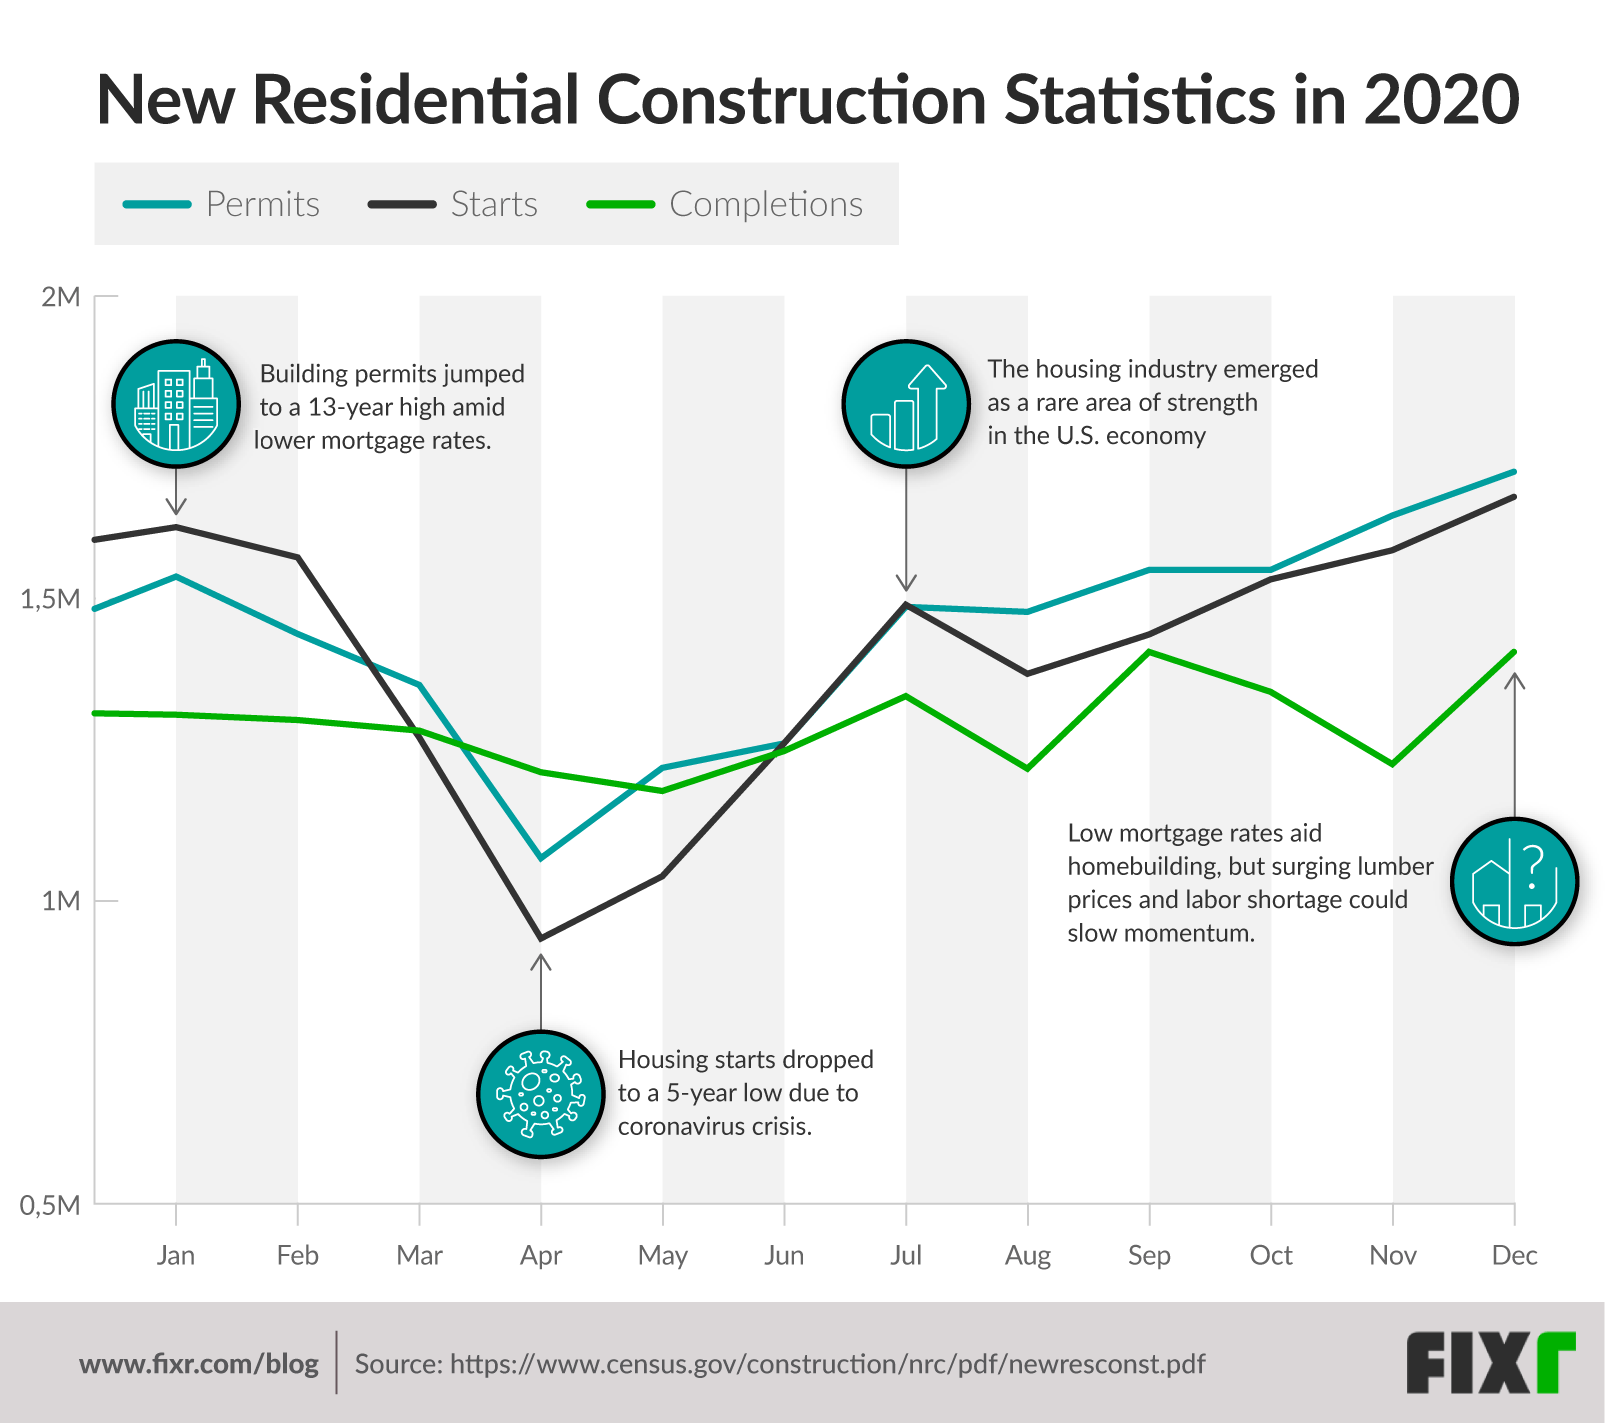 Residential Construction's Resilience during COVID-19: Permits, Starts, and Completions in 2020